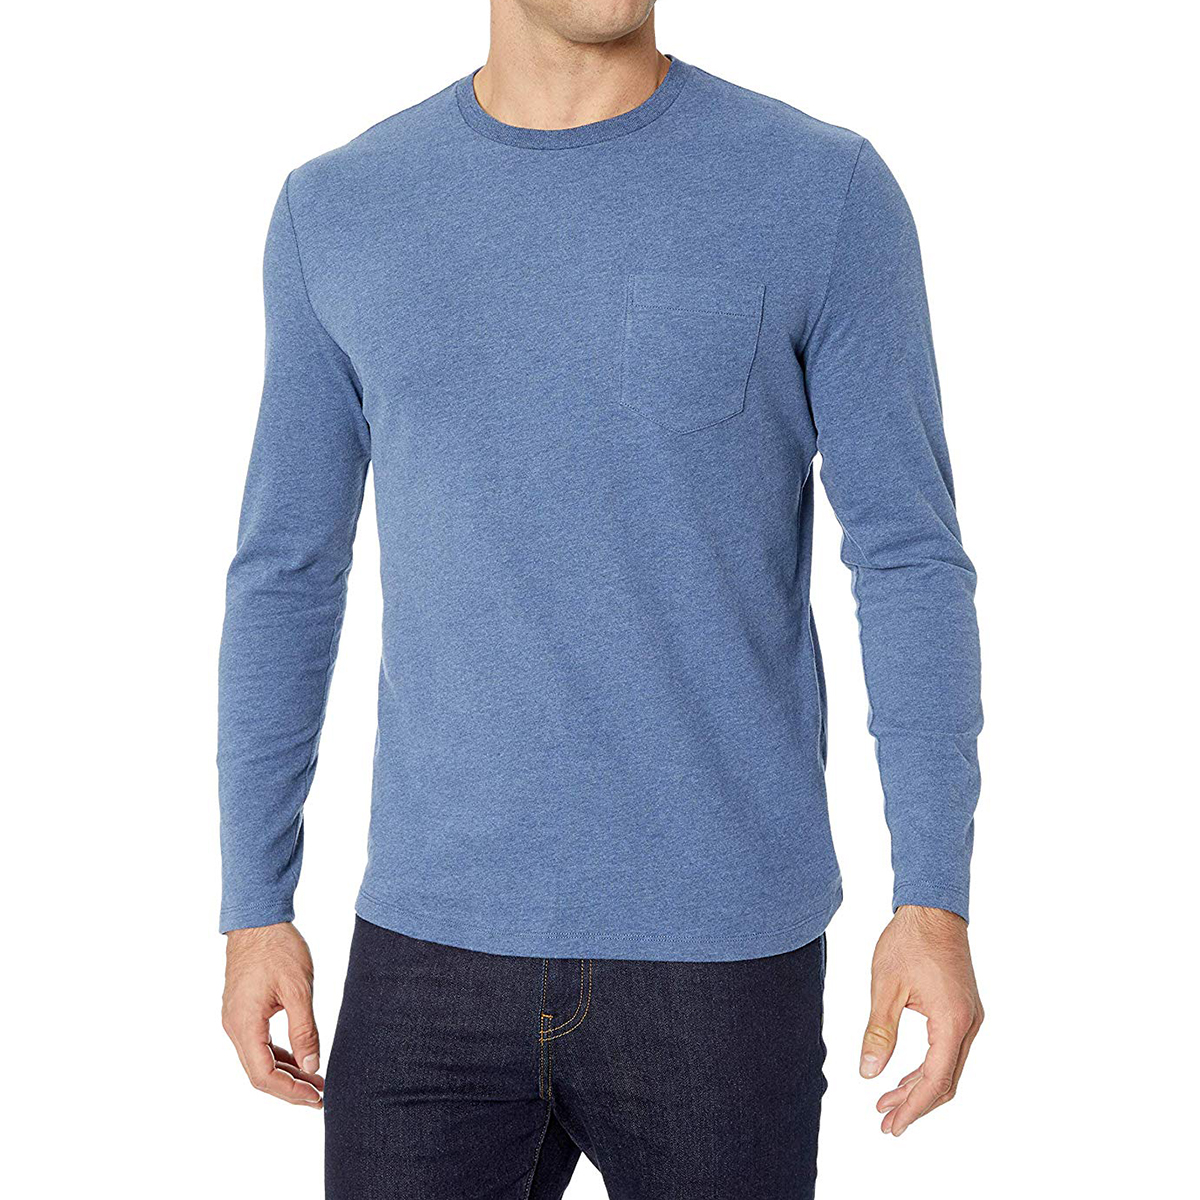 The Long Sleeve T-Shirt: Amazon Essentials Men's Slim-Fit Long-Sleeve T-Shirt